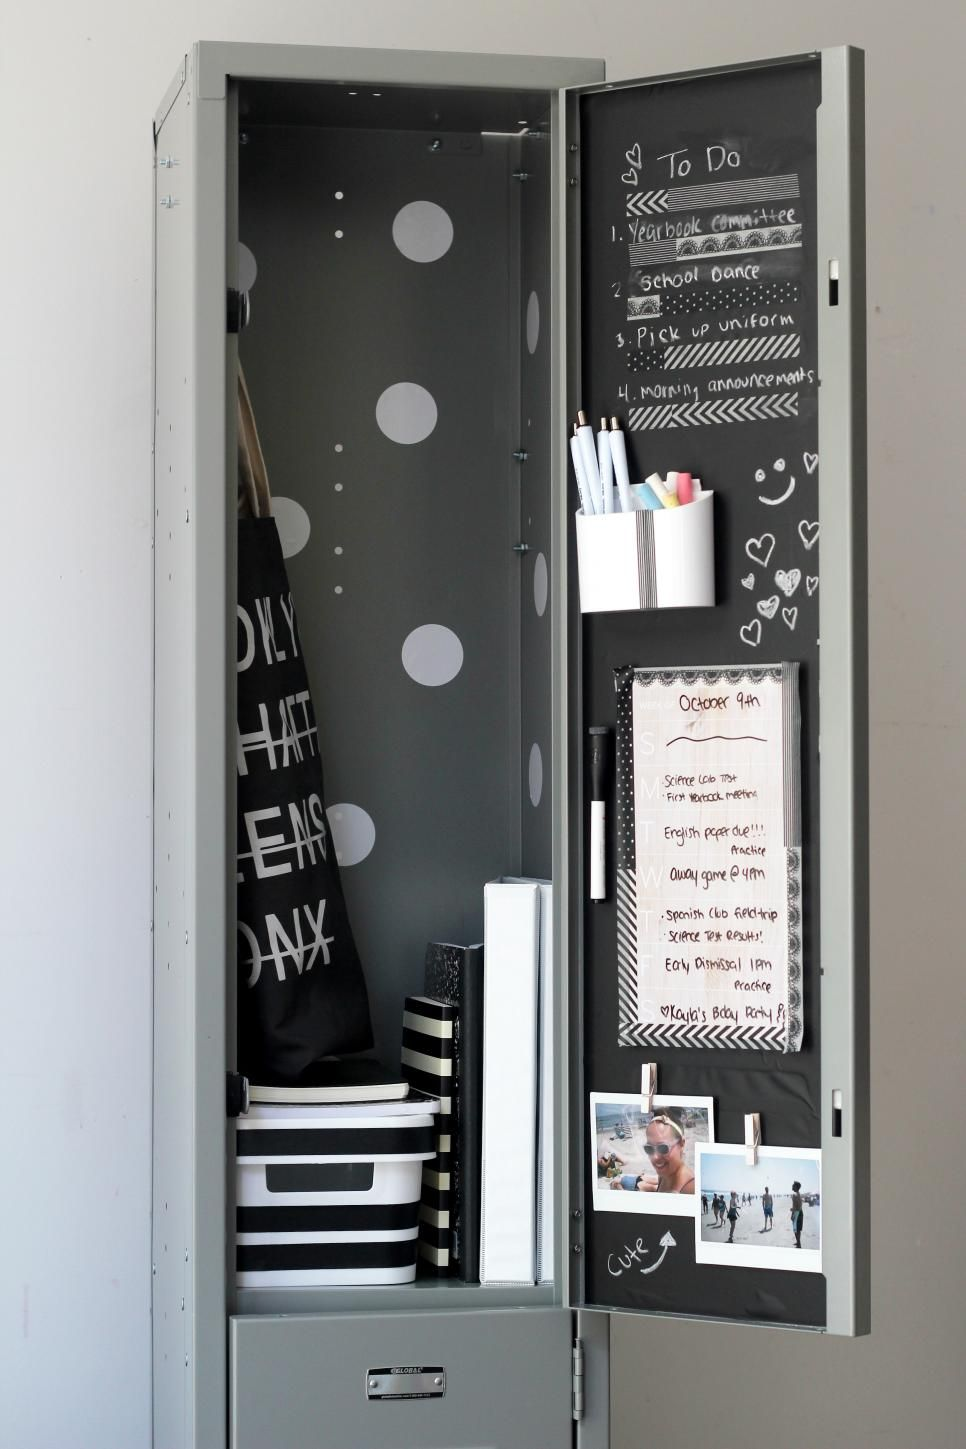 22 Diy Locker Decorating Ideas Organizing Tricks School Locker Decorations School Locker Organization School Lockers